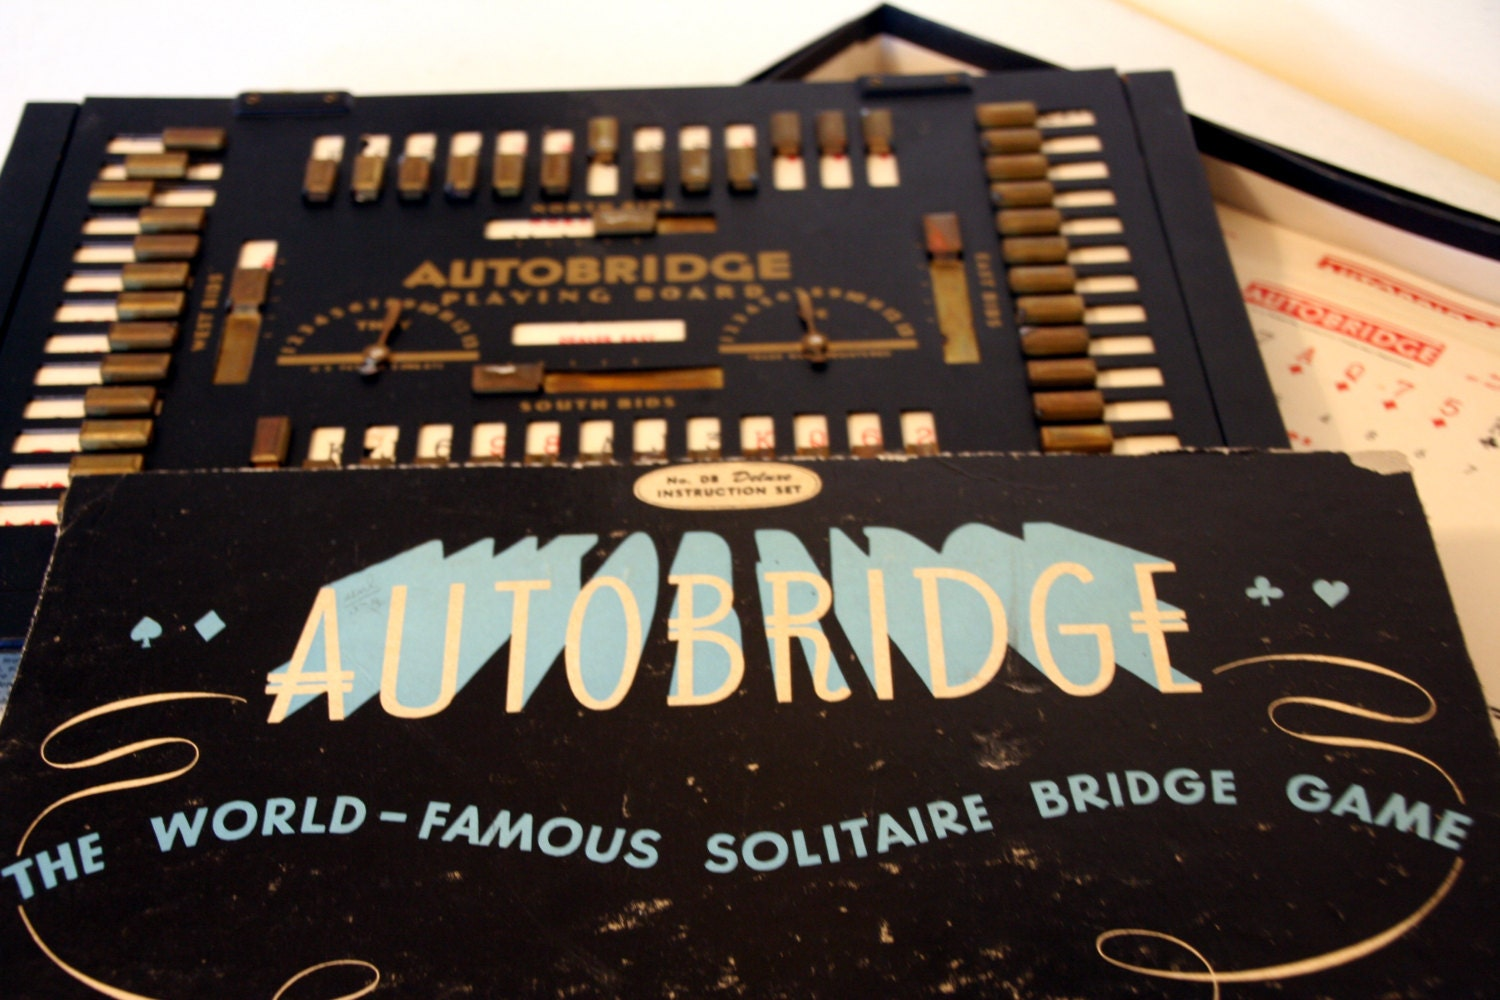 Auto bridge game vintage card game classic solitaire game for Charity motors bridge card